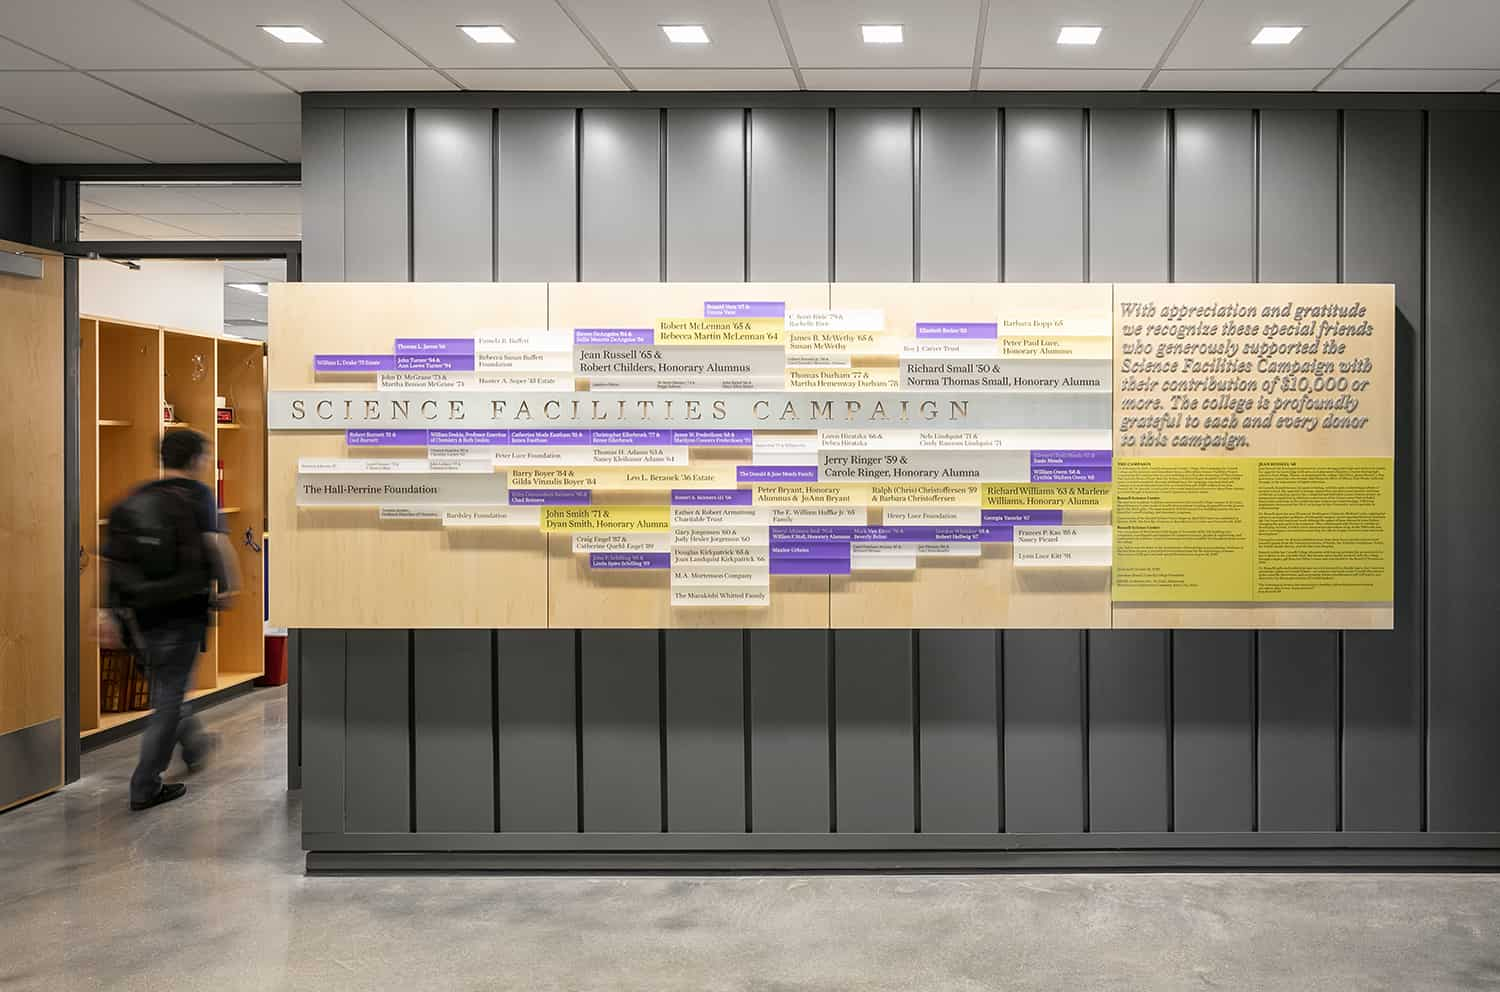 A wood panel donor wall mounted outside of a classroom that honors the Science Facilities Campaign.